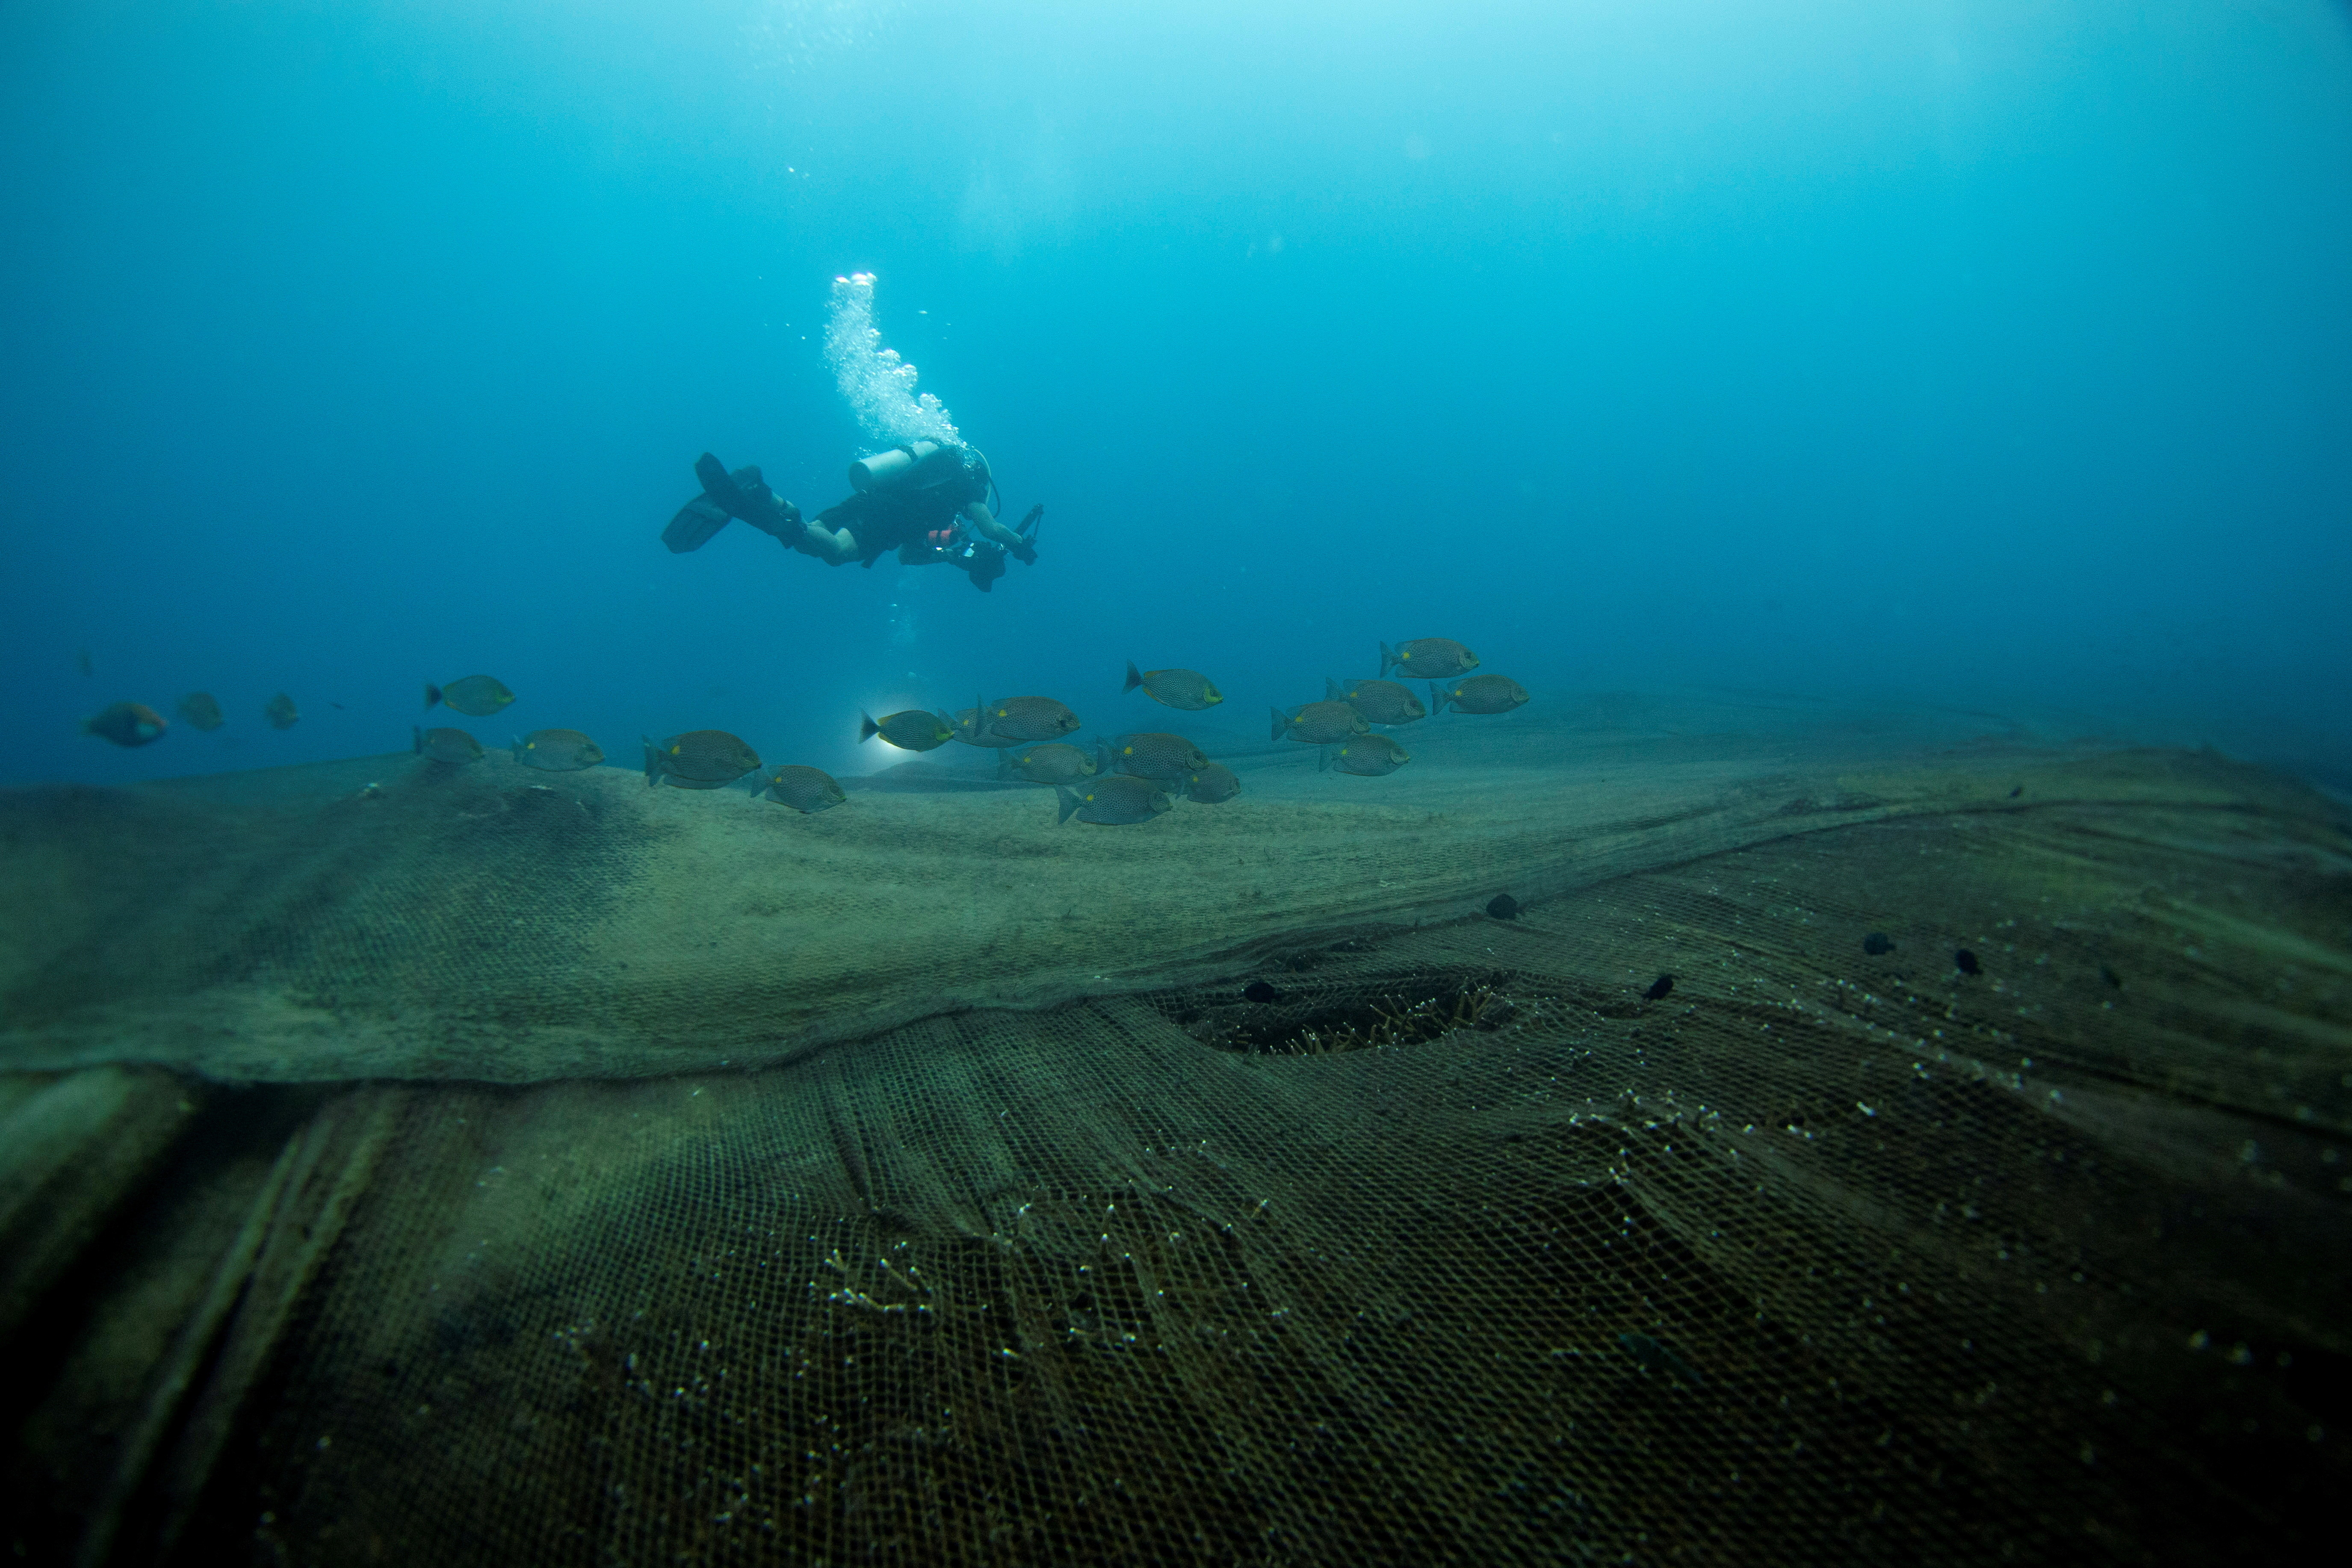 a picture of a diver swimming over the ocean floor